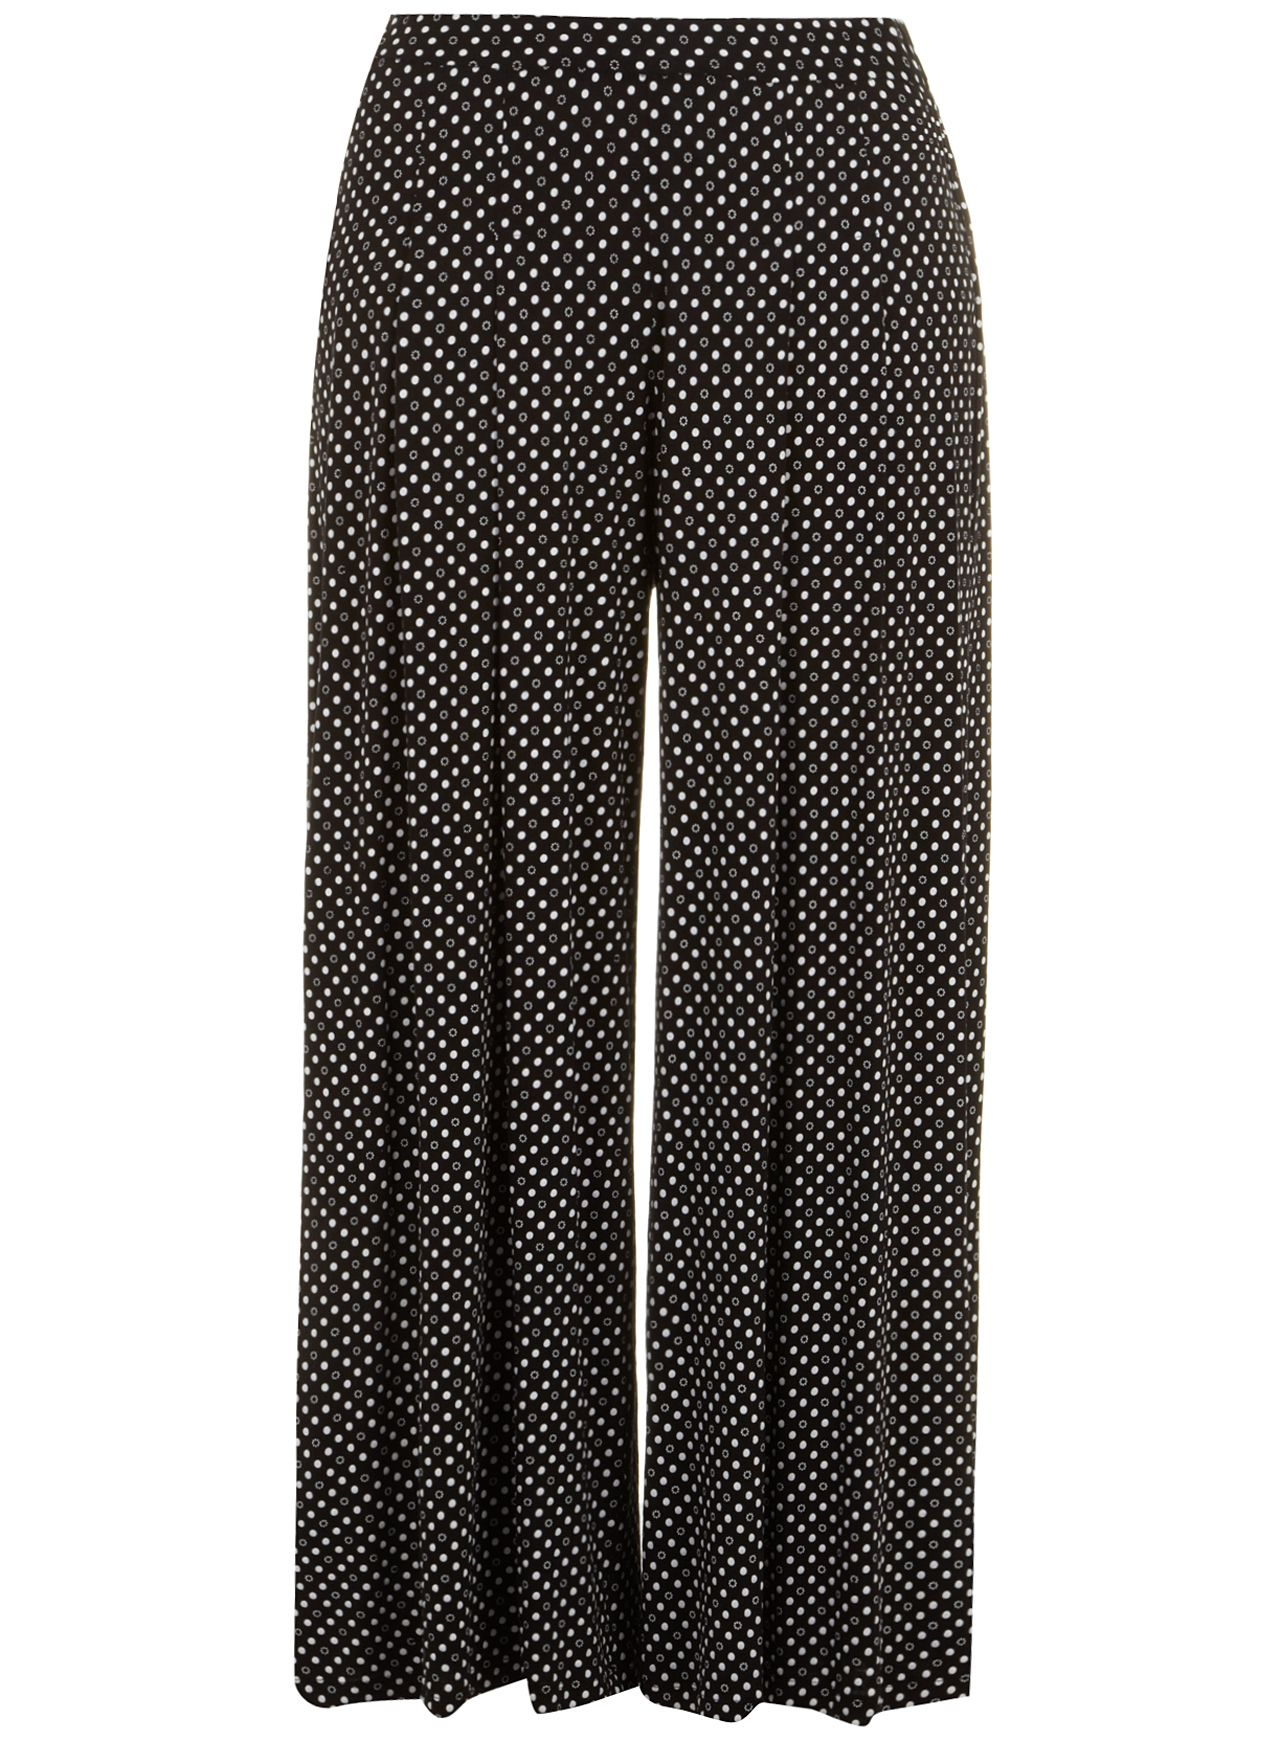 Black and white wide leg trouser